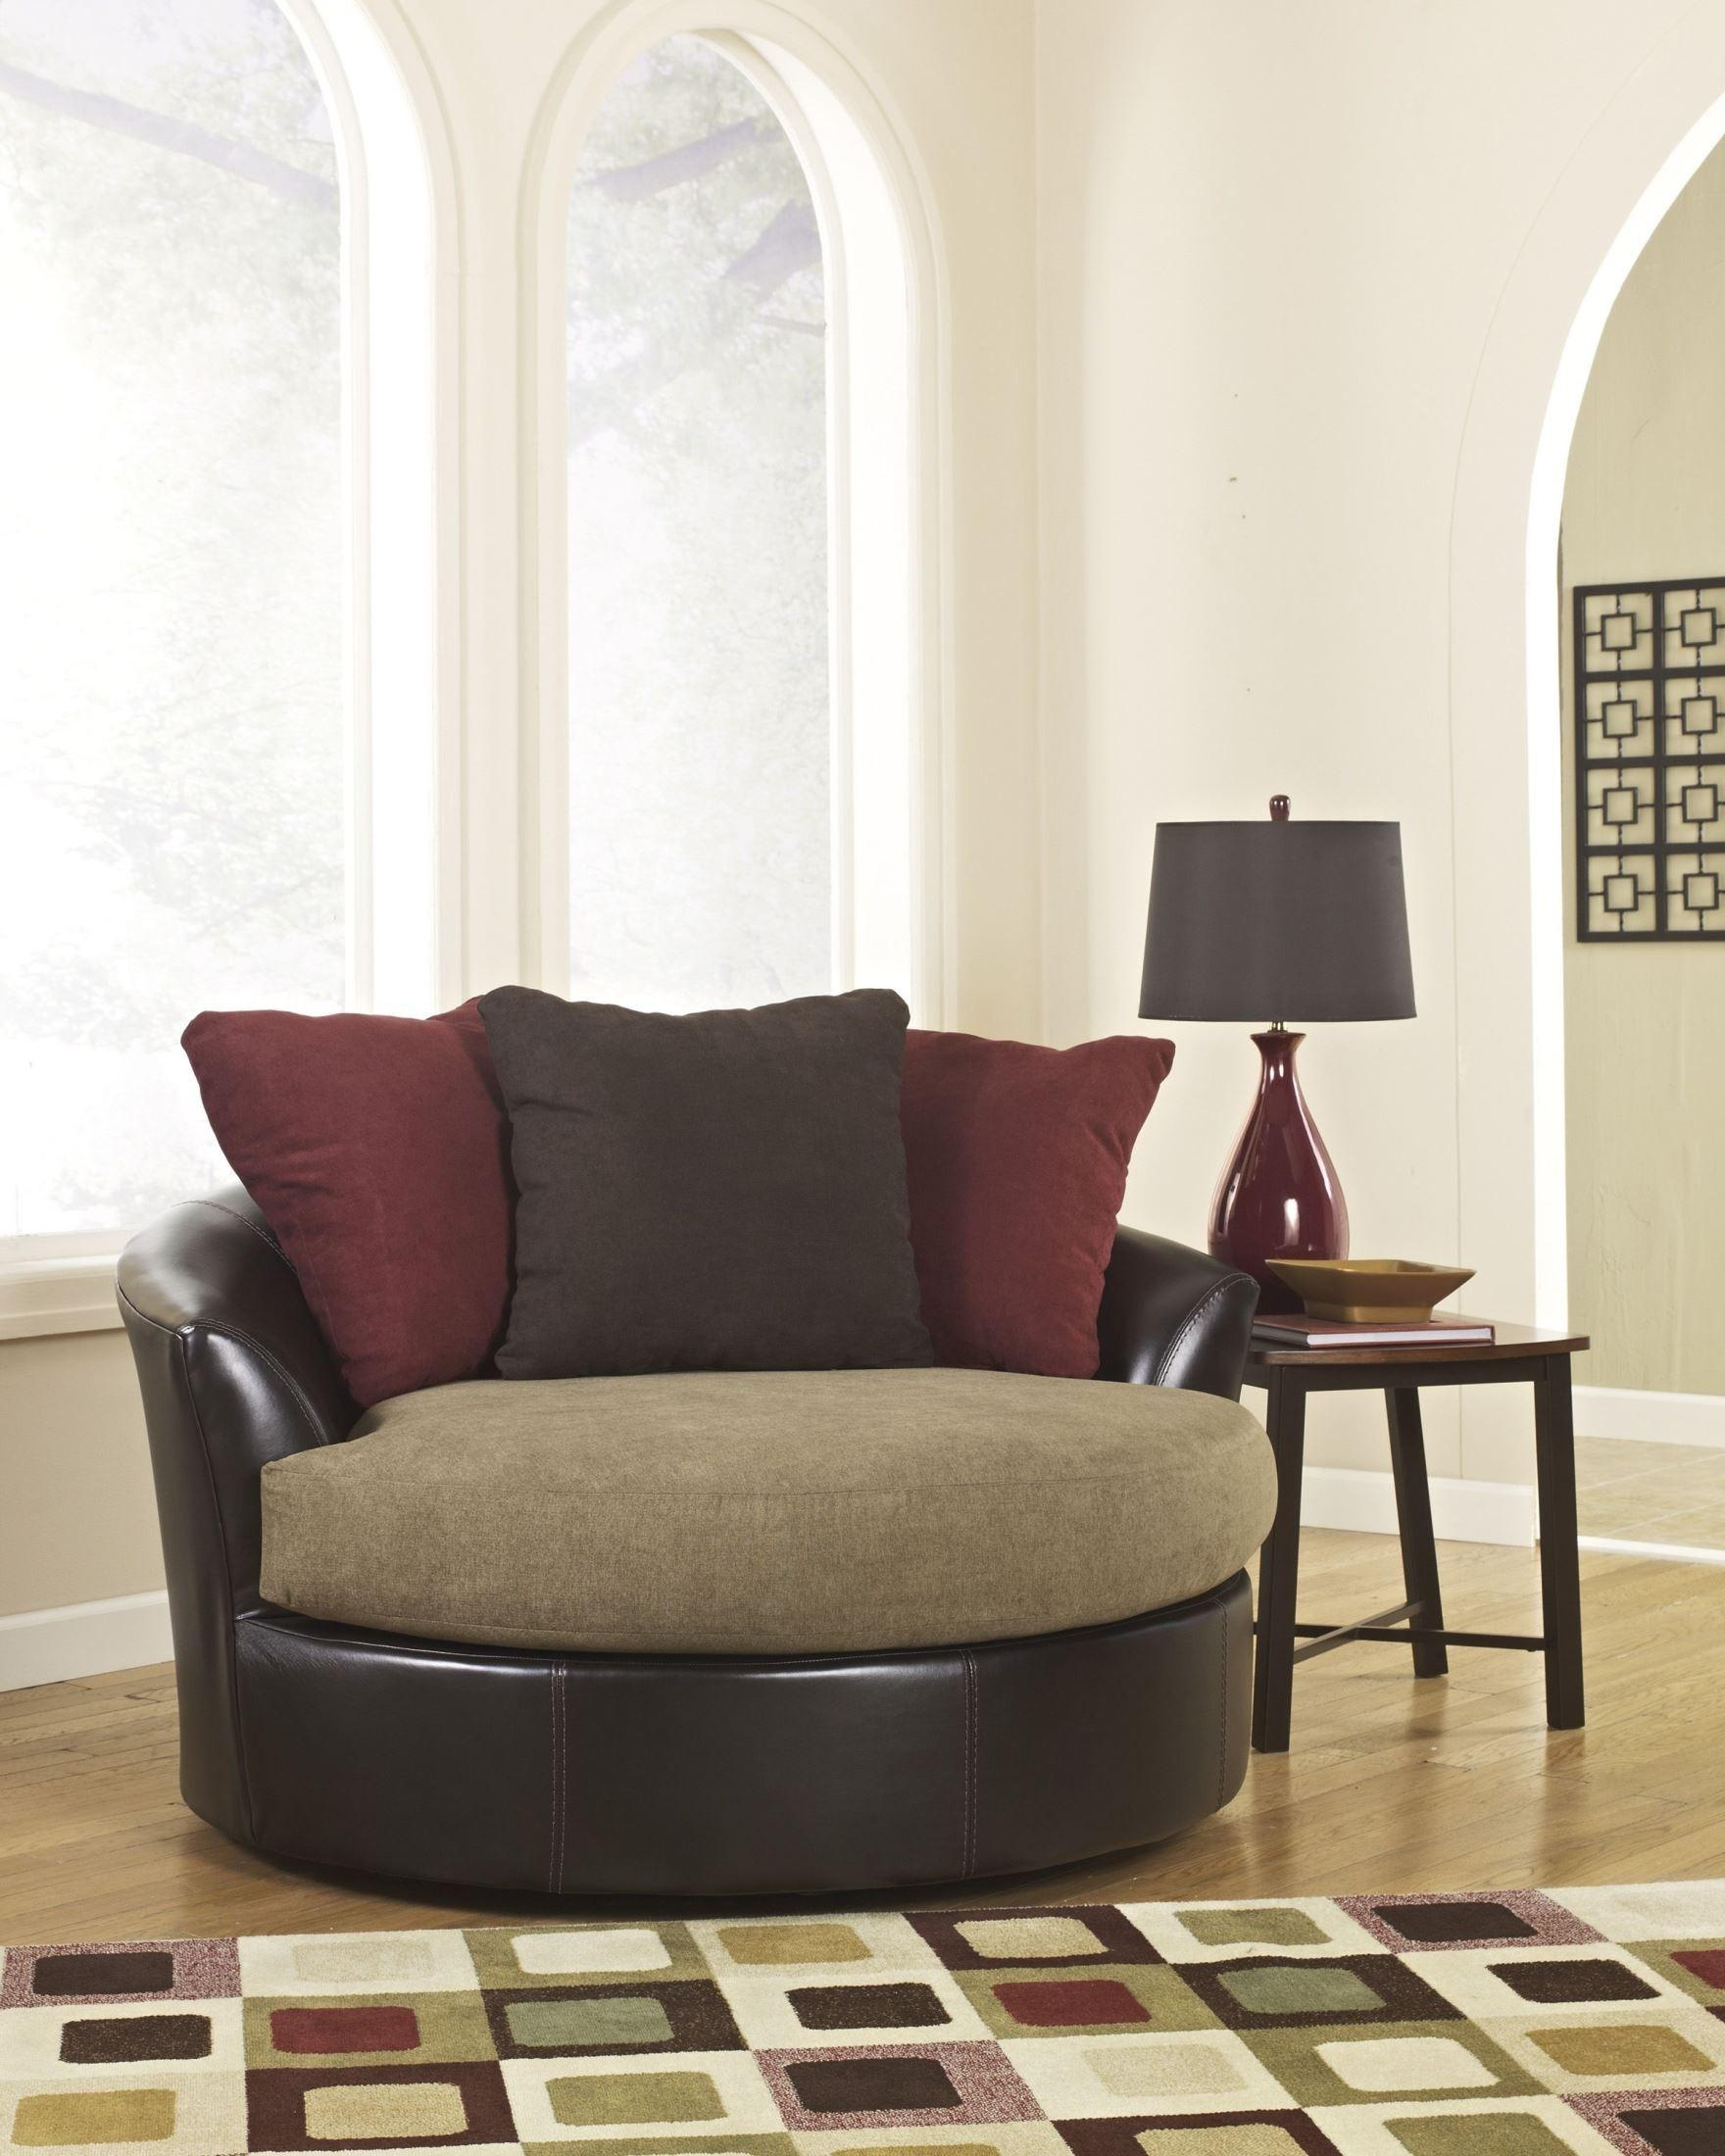 Oversized Circle Chair 2018 Latest Oversized Sofa Chairs Sofa Ideas